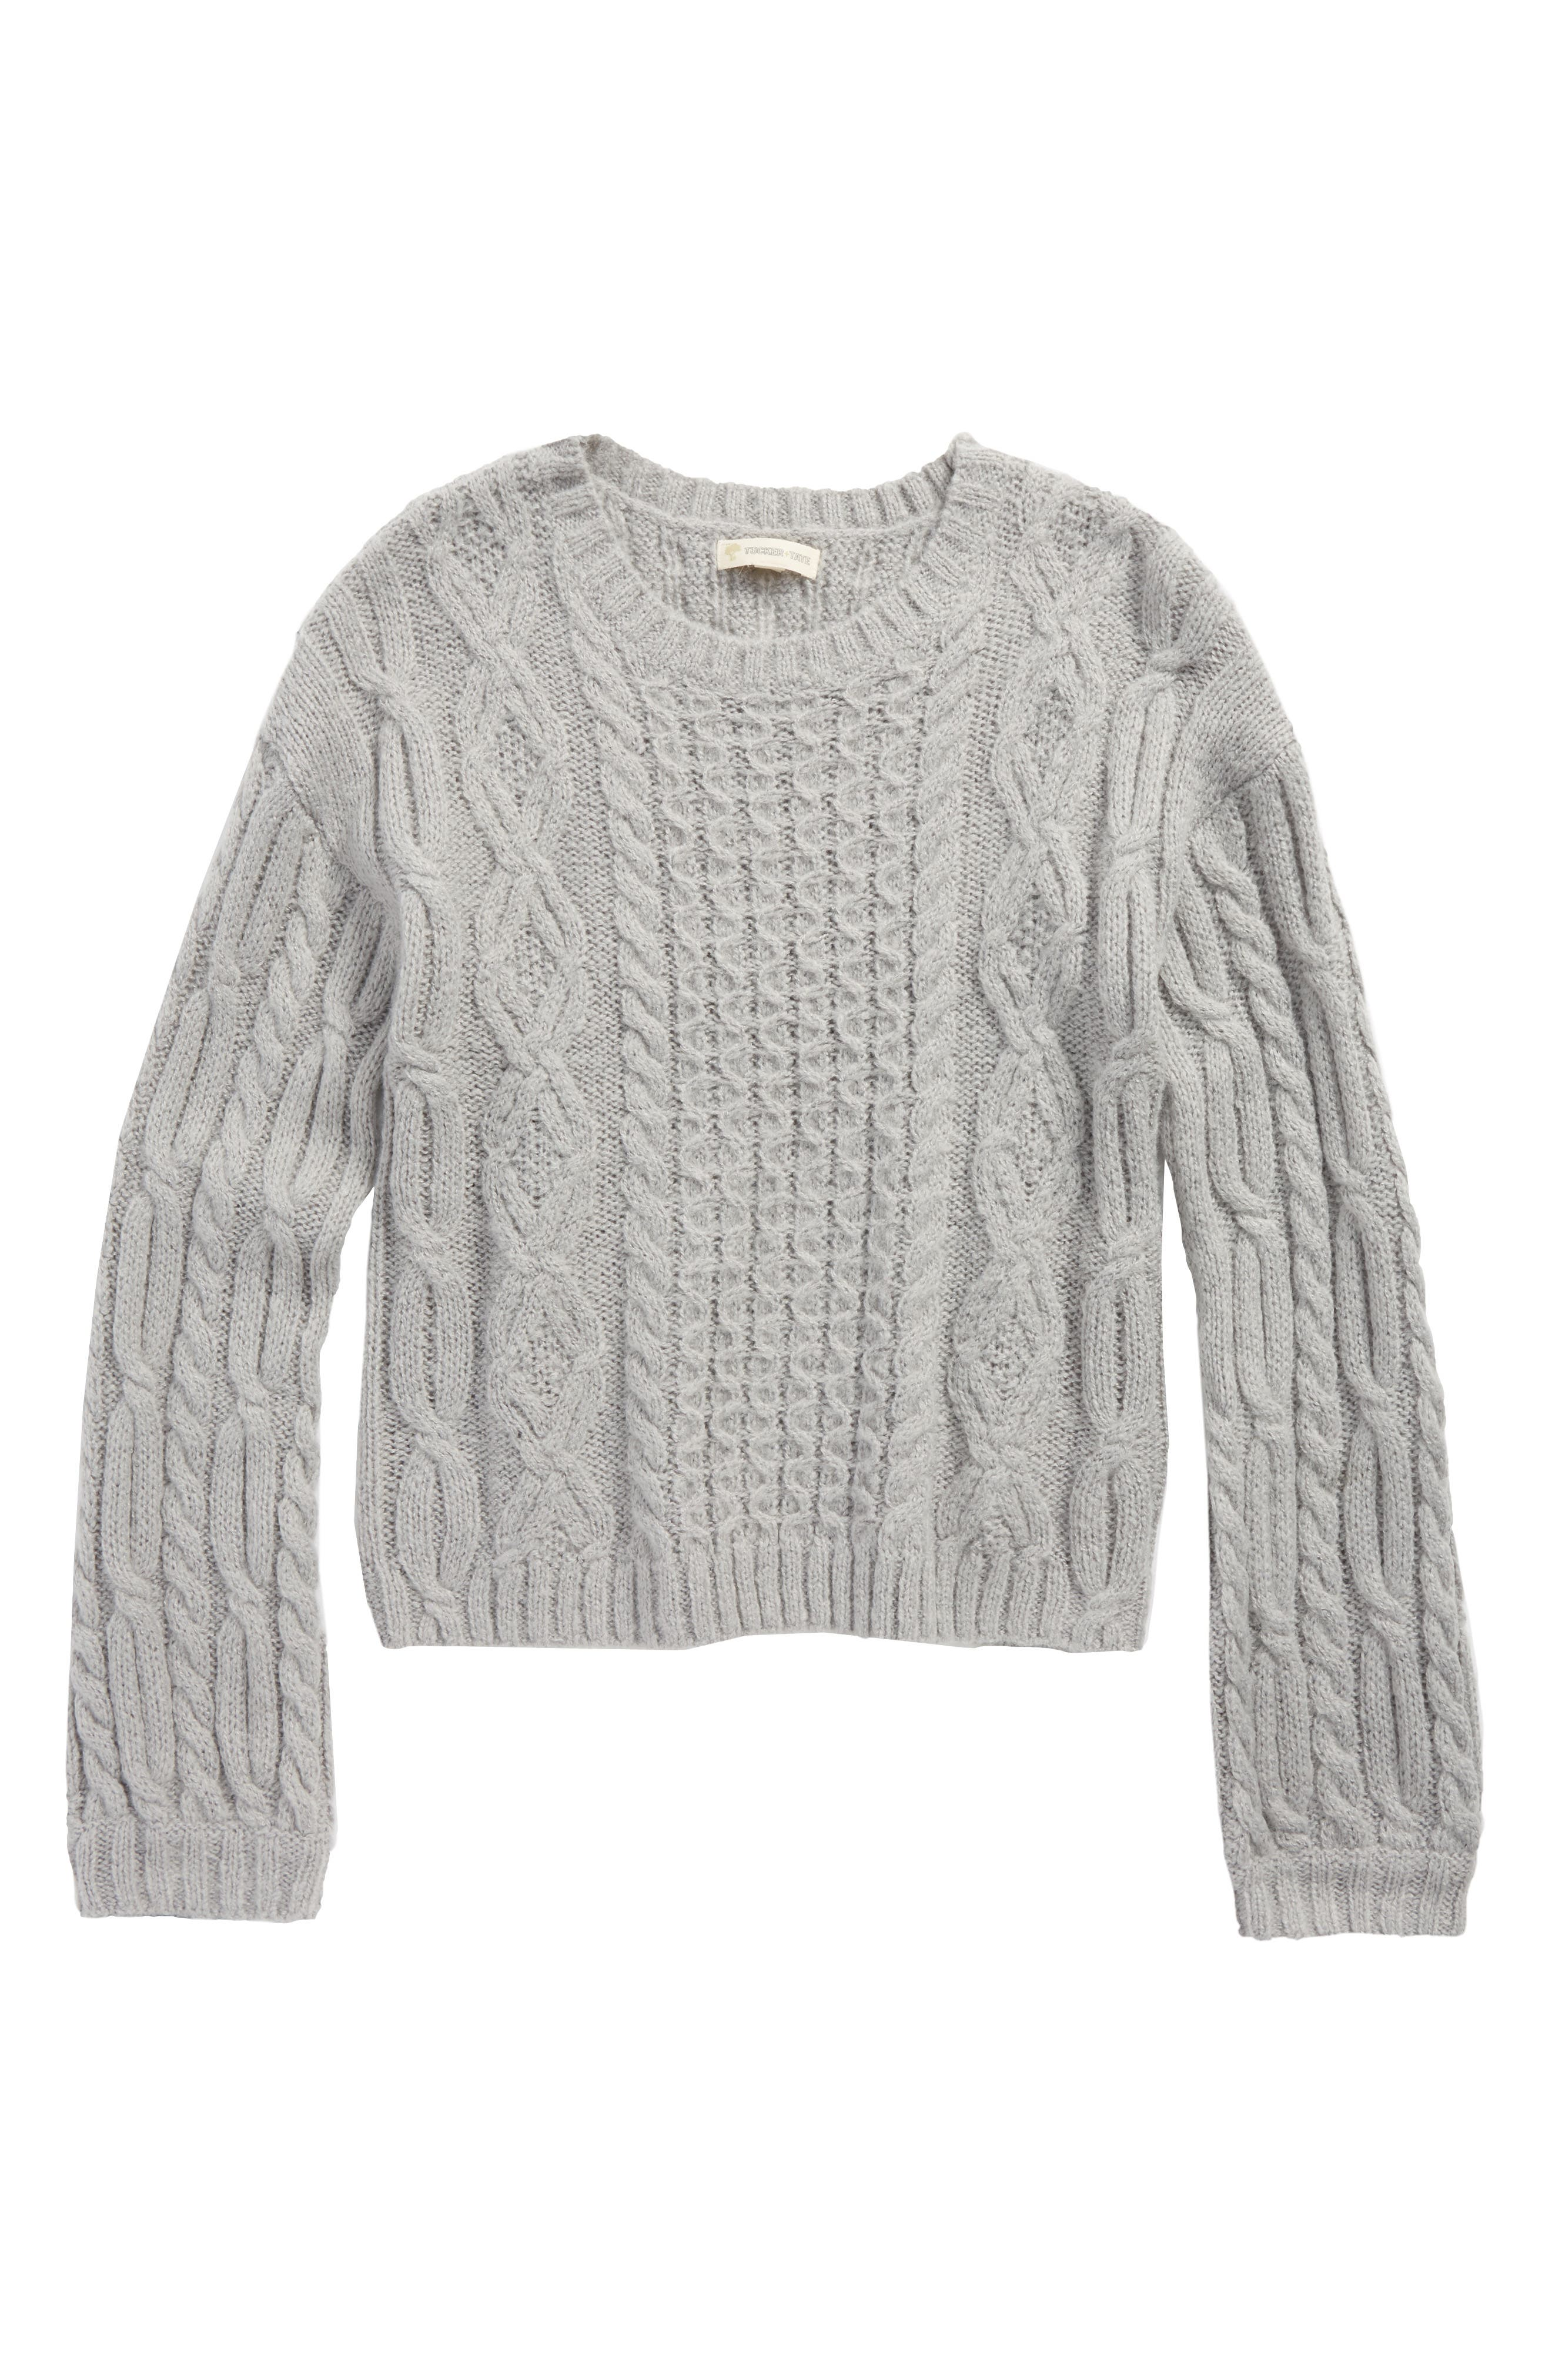 Alternate Image 1 Selected - Tucker + Tate Cable Sweater (Big Girls)